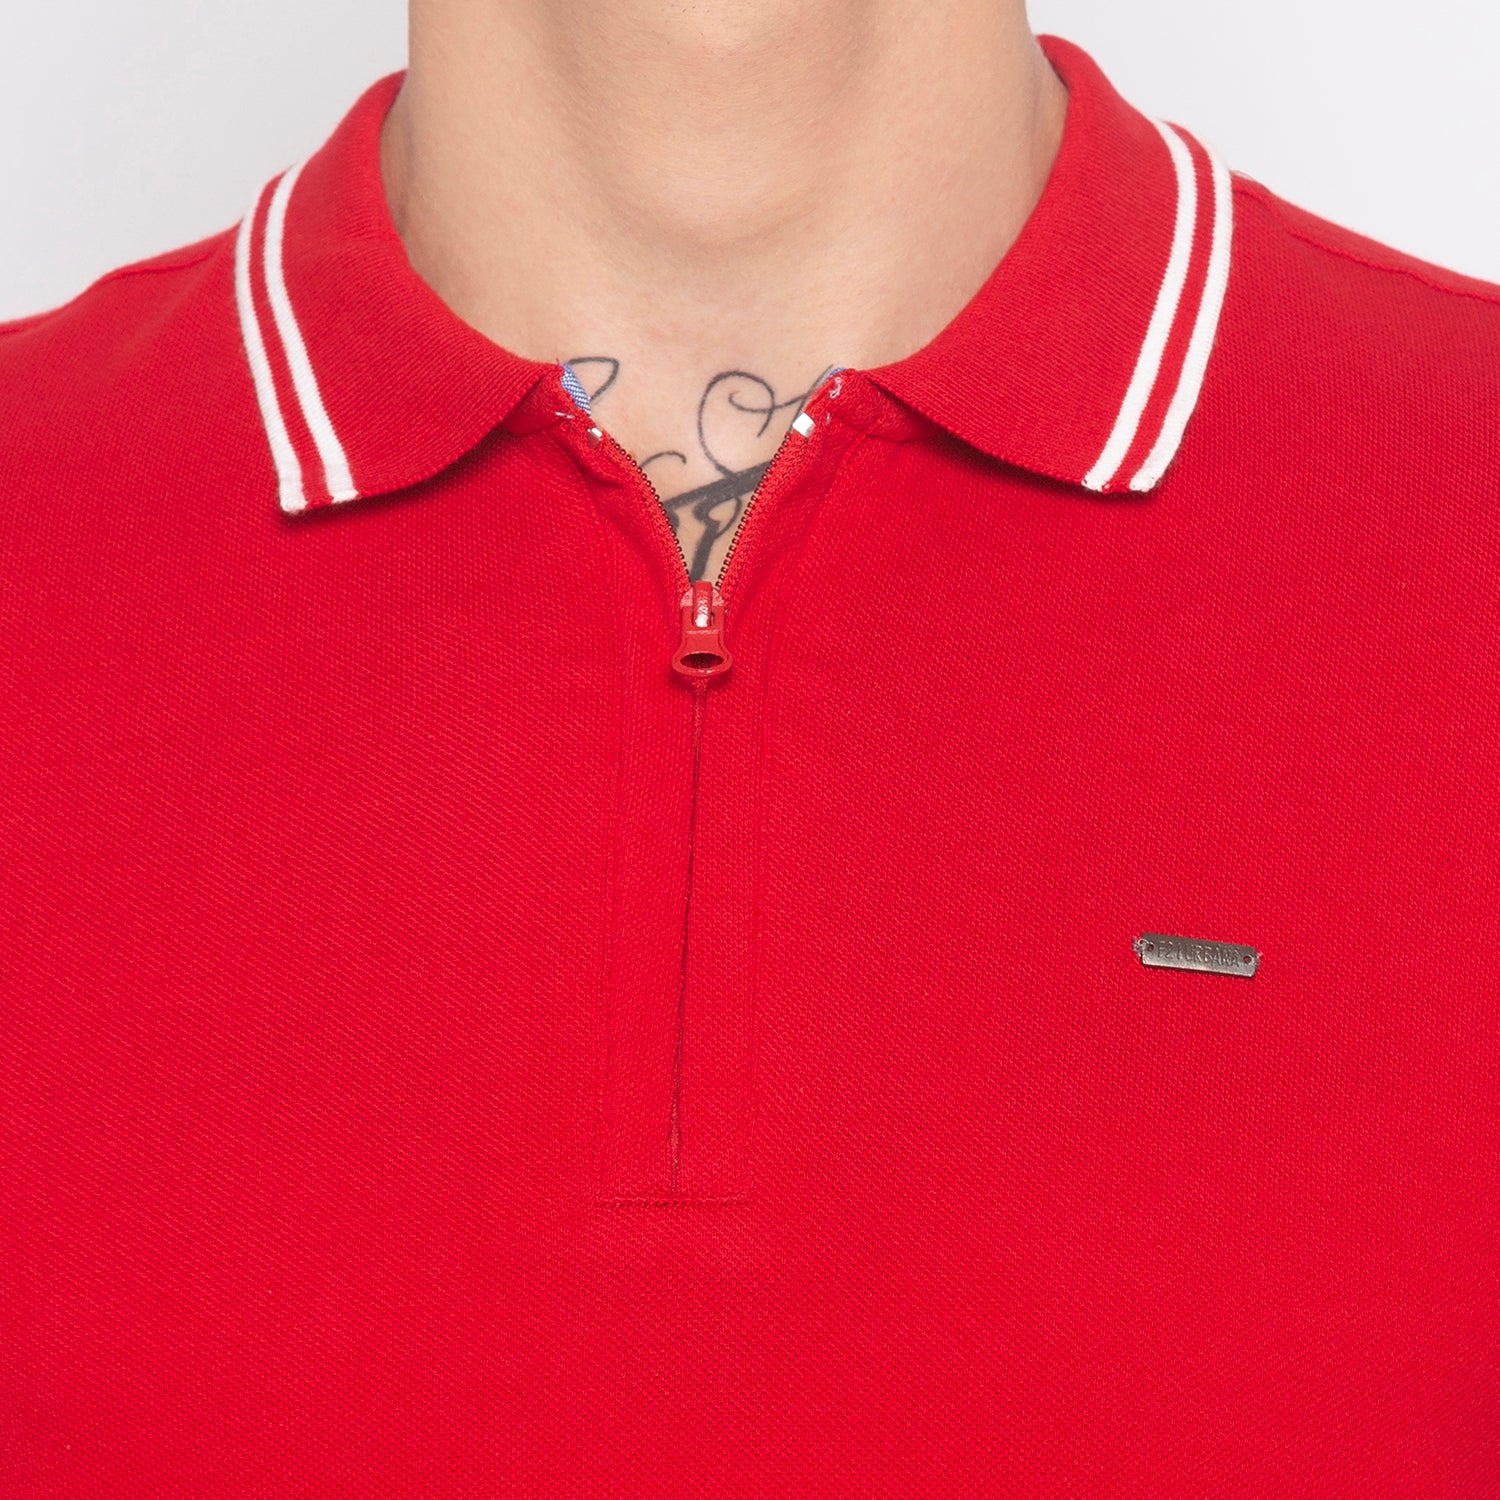 Zipper Polo Neck Solid Red T-shirt-5